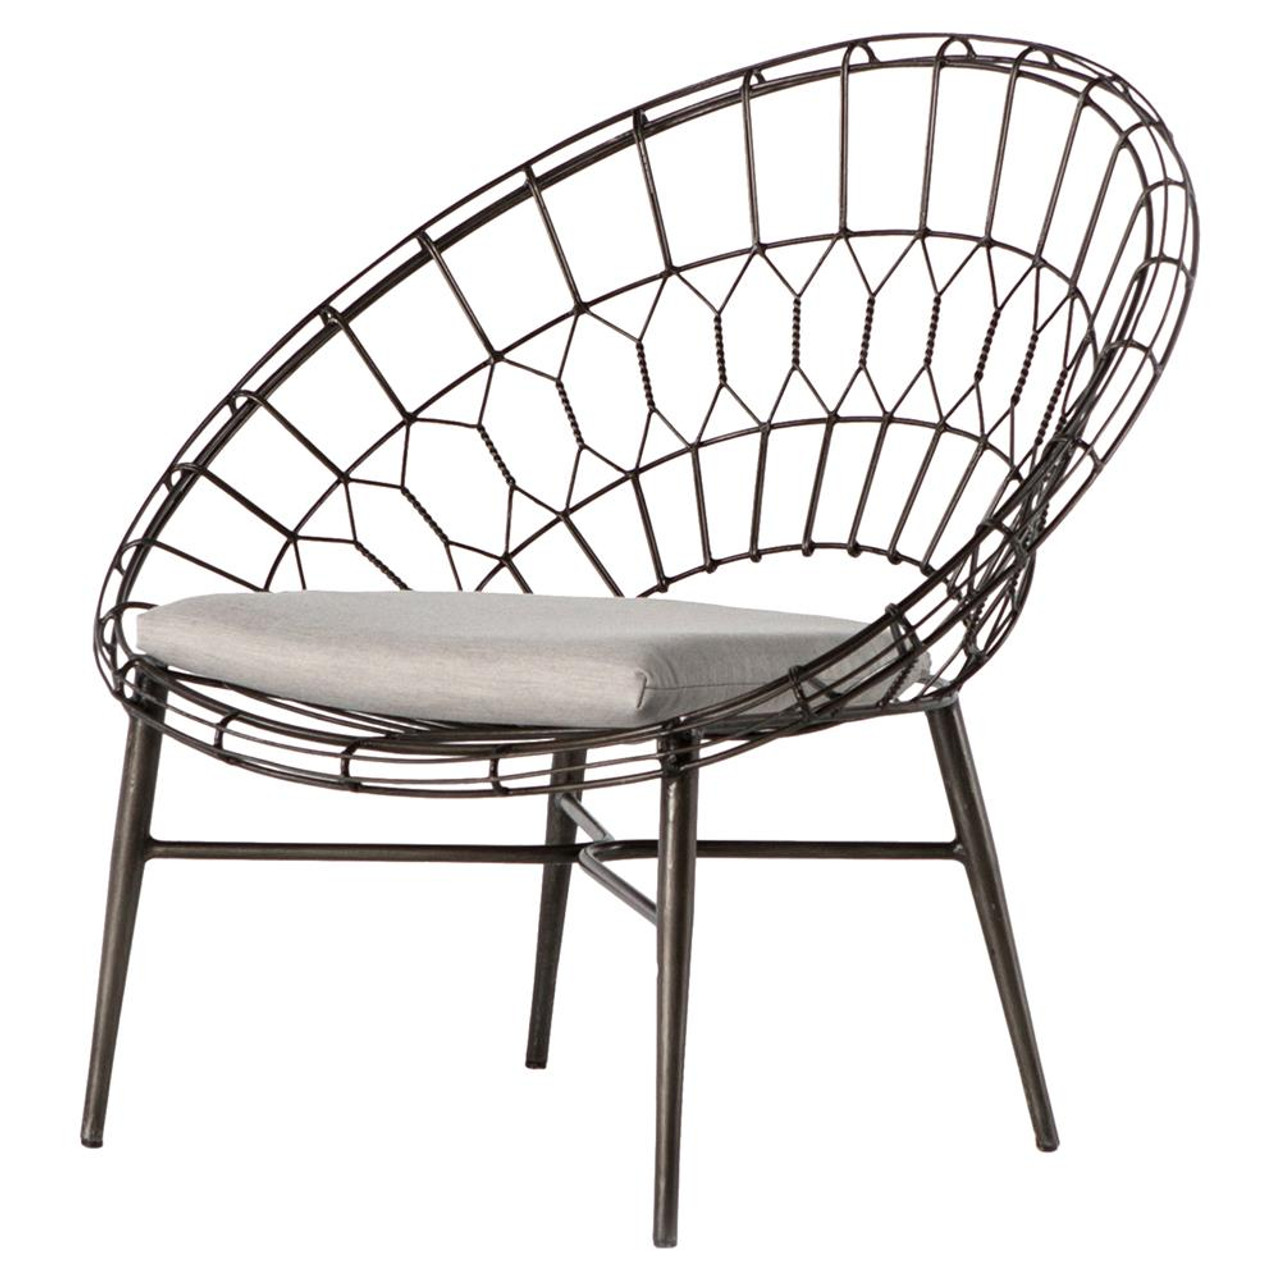 Wicker Home Outdoor Lounge Marquis Metal Sunburst ChairZin MzqSUVp